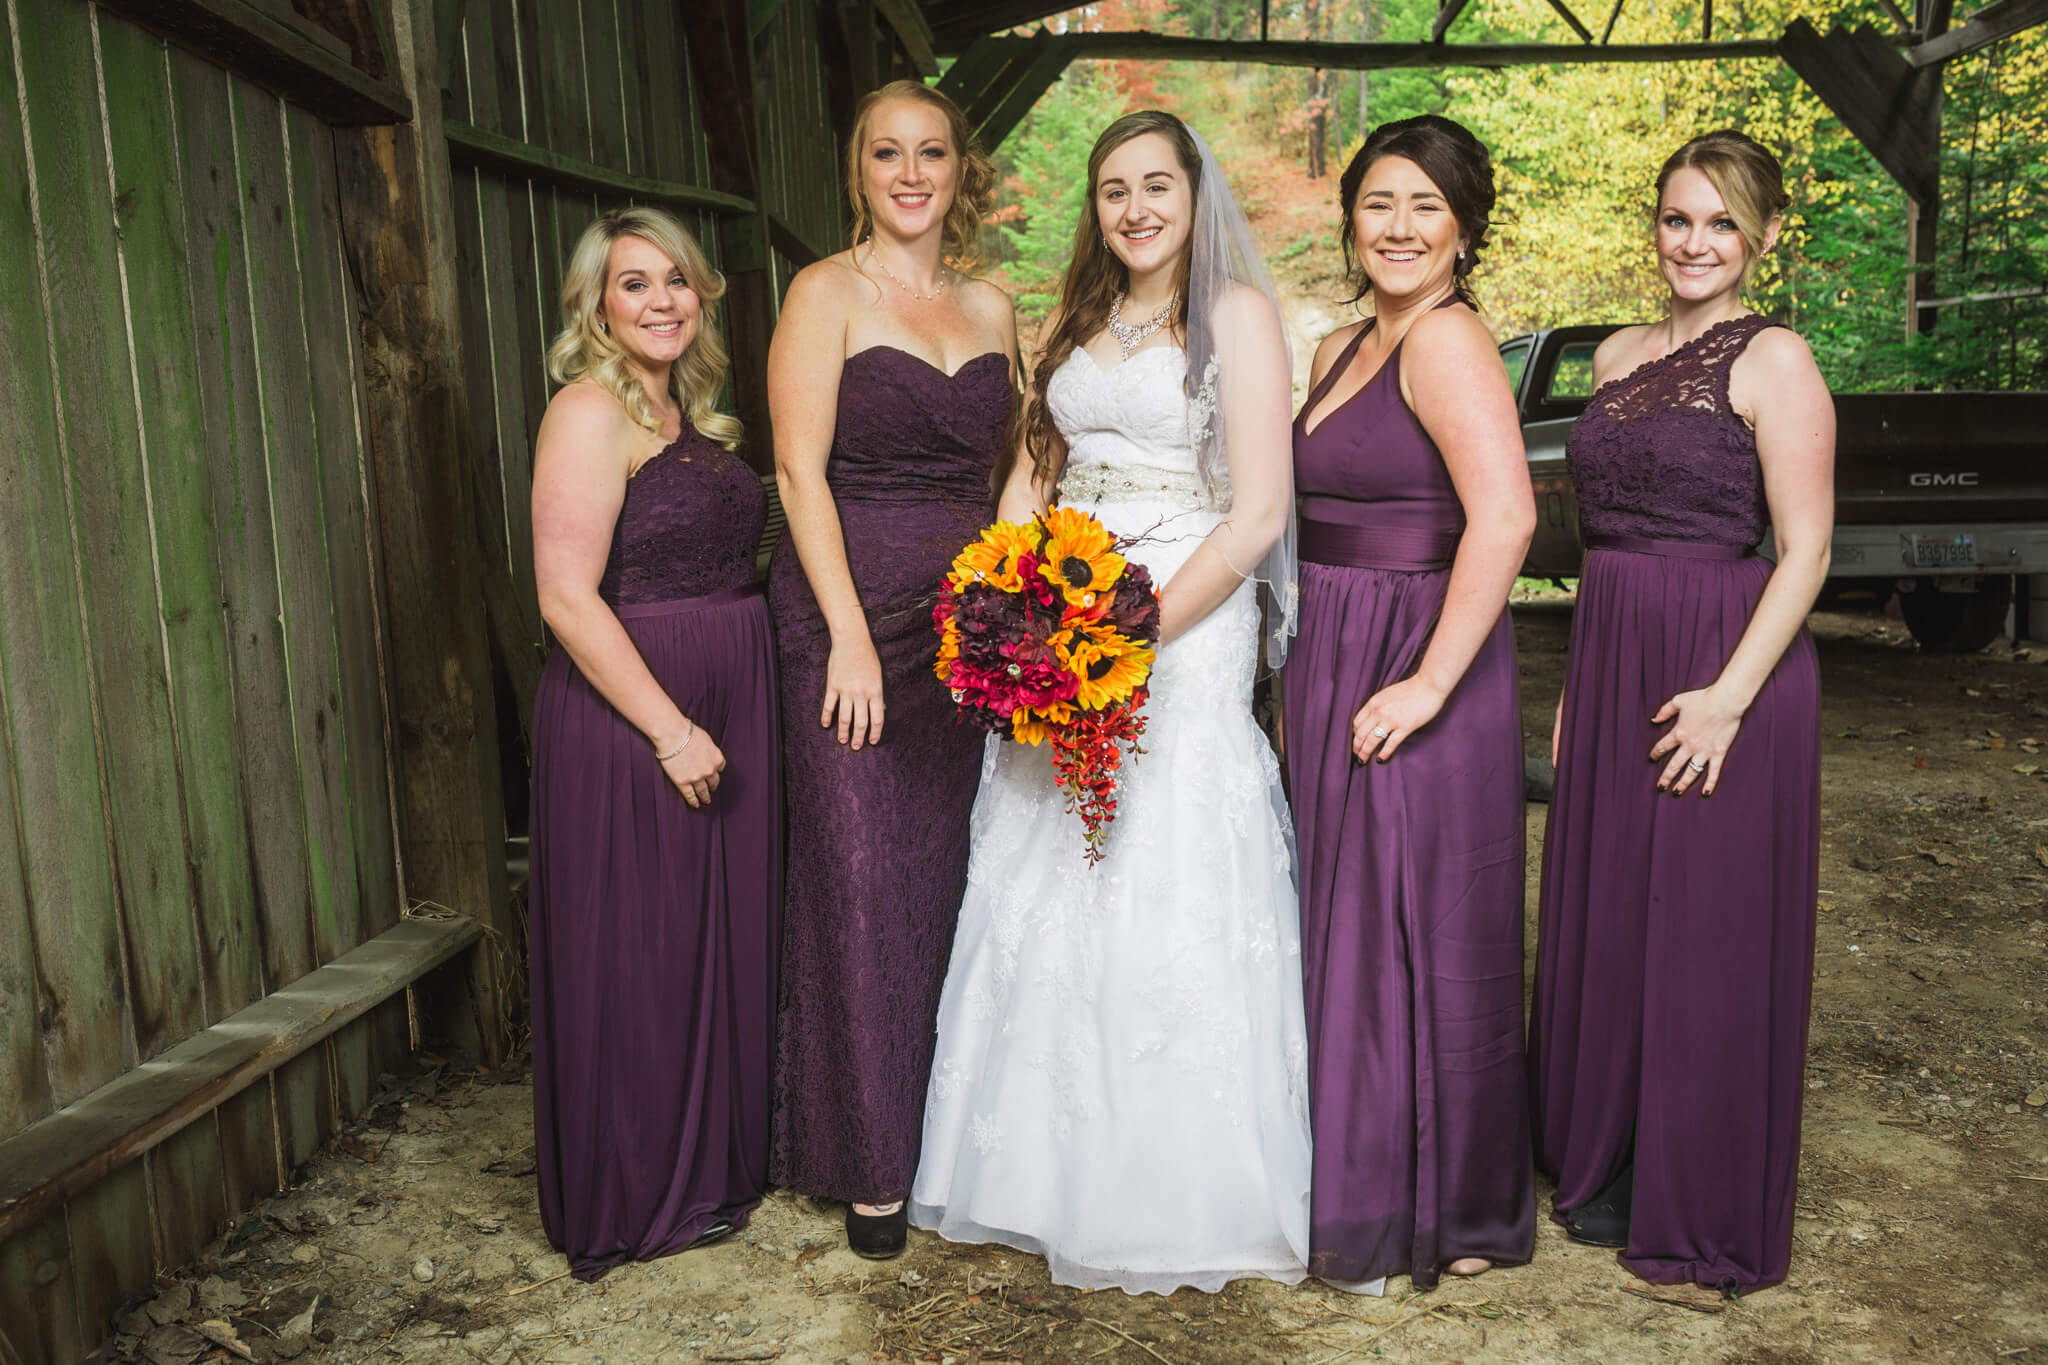 Mitcham's Barn Wedding-115.JPG